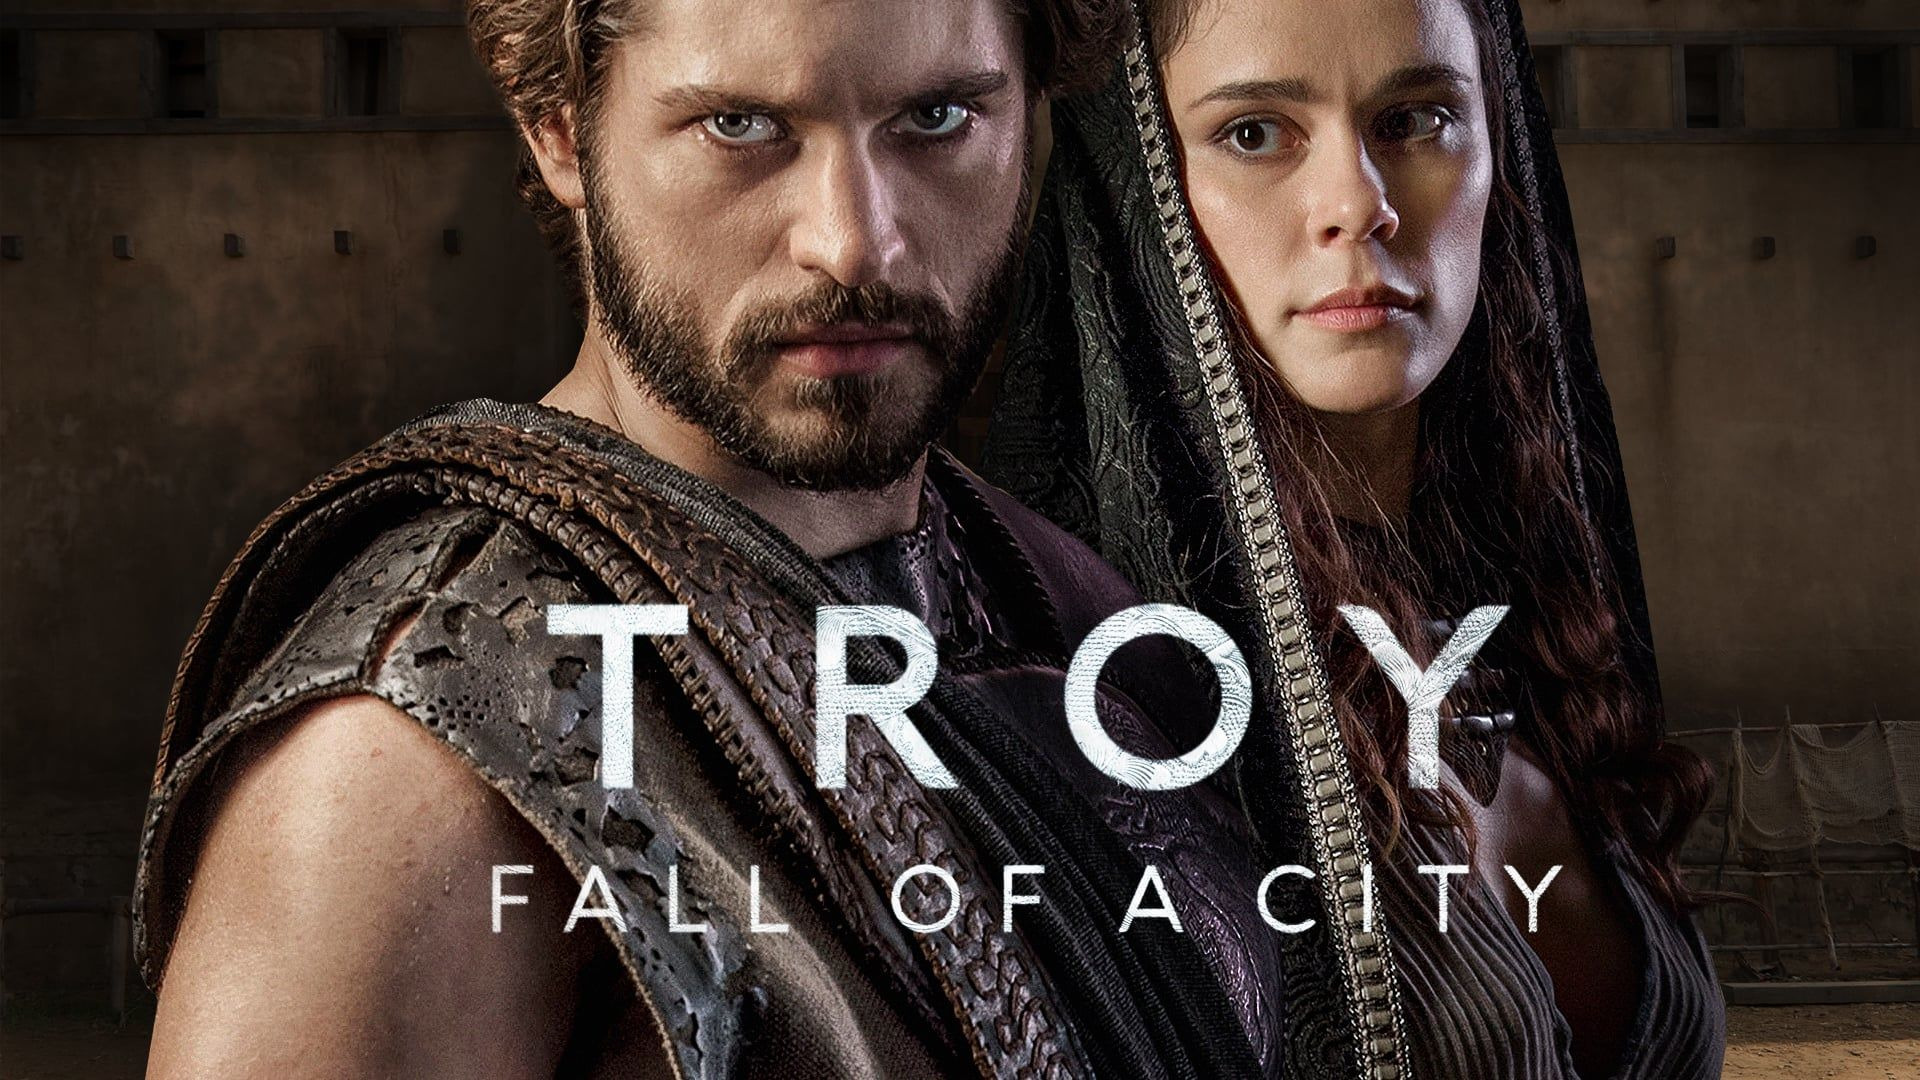 Show Troy: Fall of a City